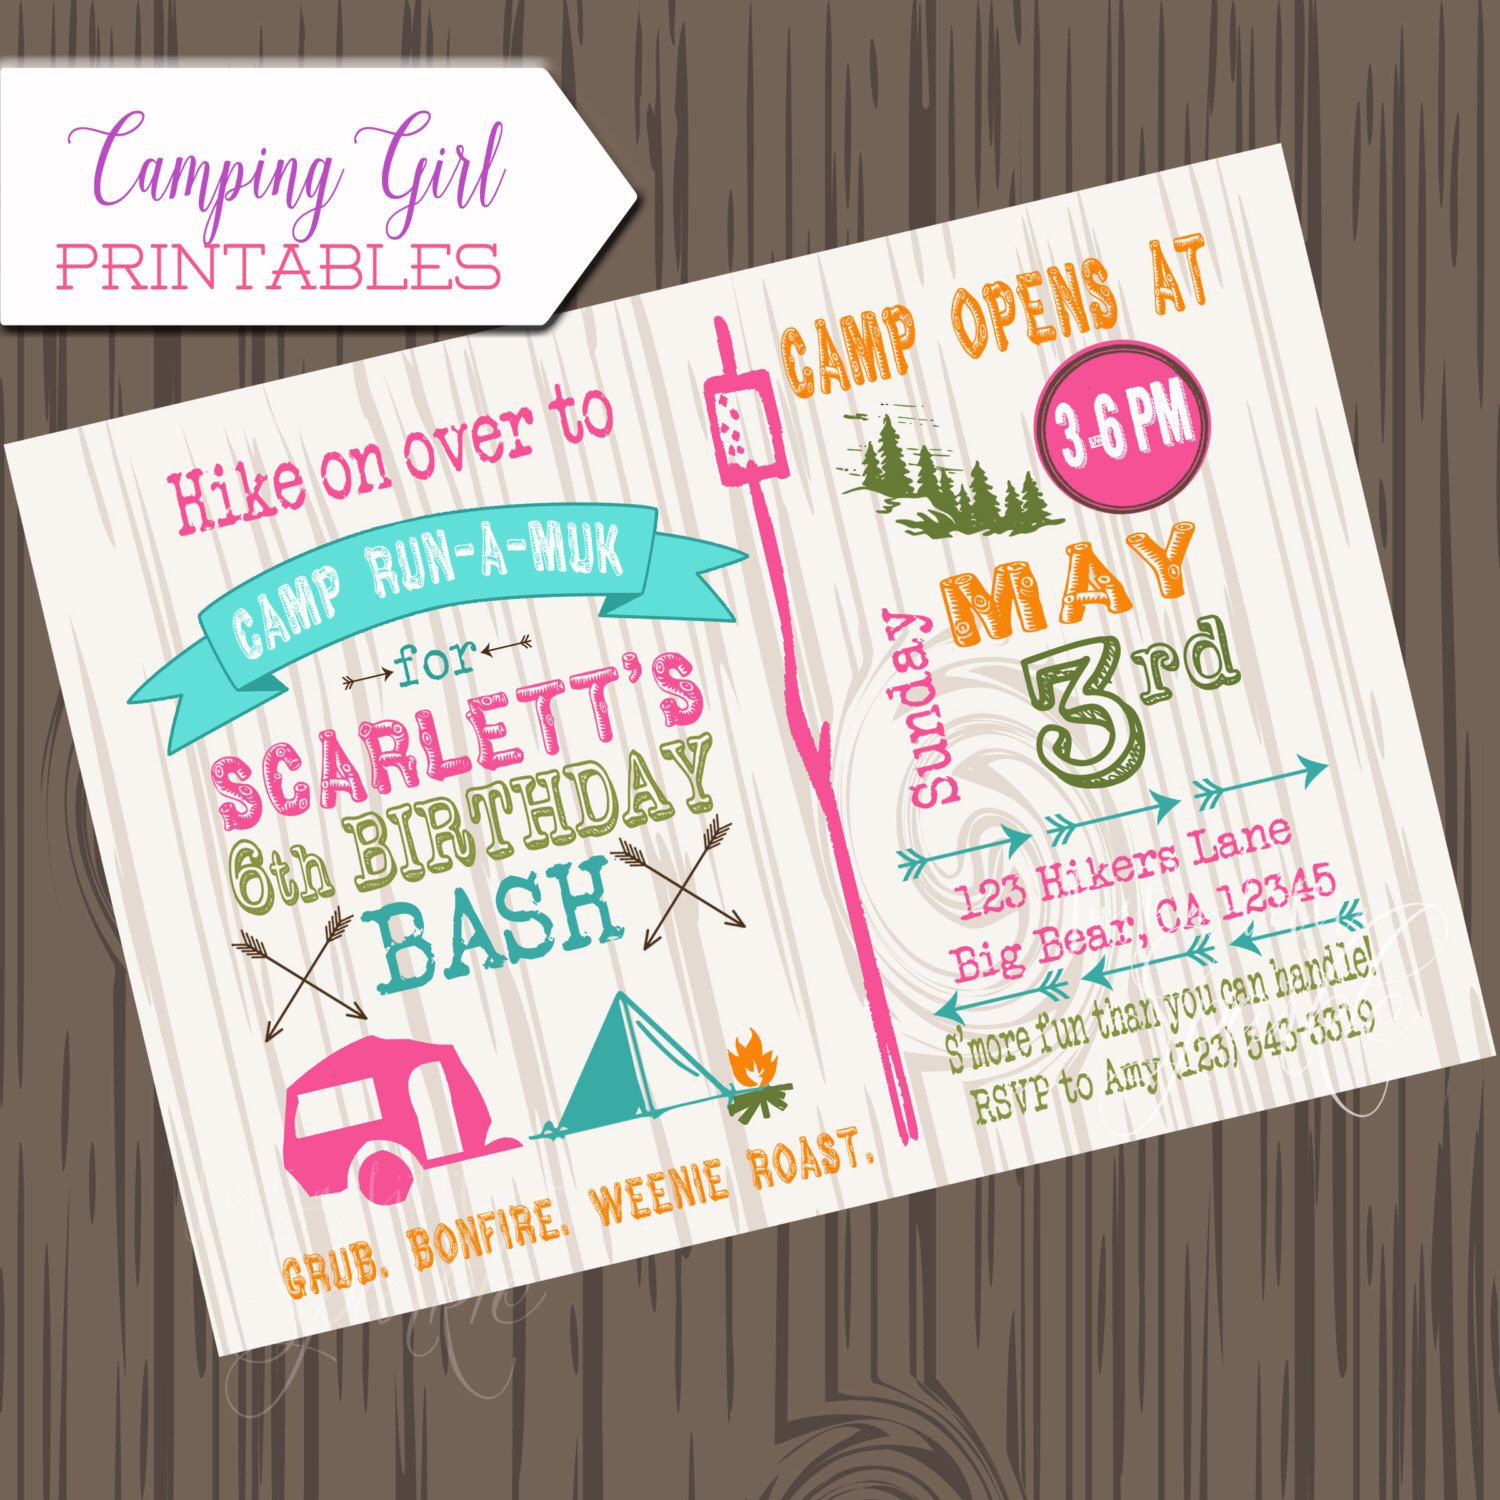 Girl camping birthday invitation diy printable camp birthday girl camping birthday invitation diy printable camp birthday invite camping invitation girl camping invite by justalittlesparkle on etsy filmwisefo